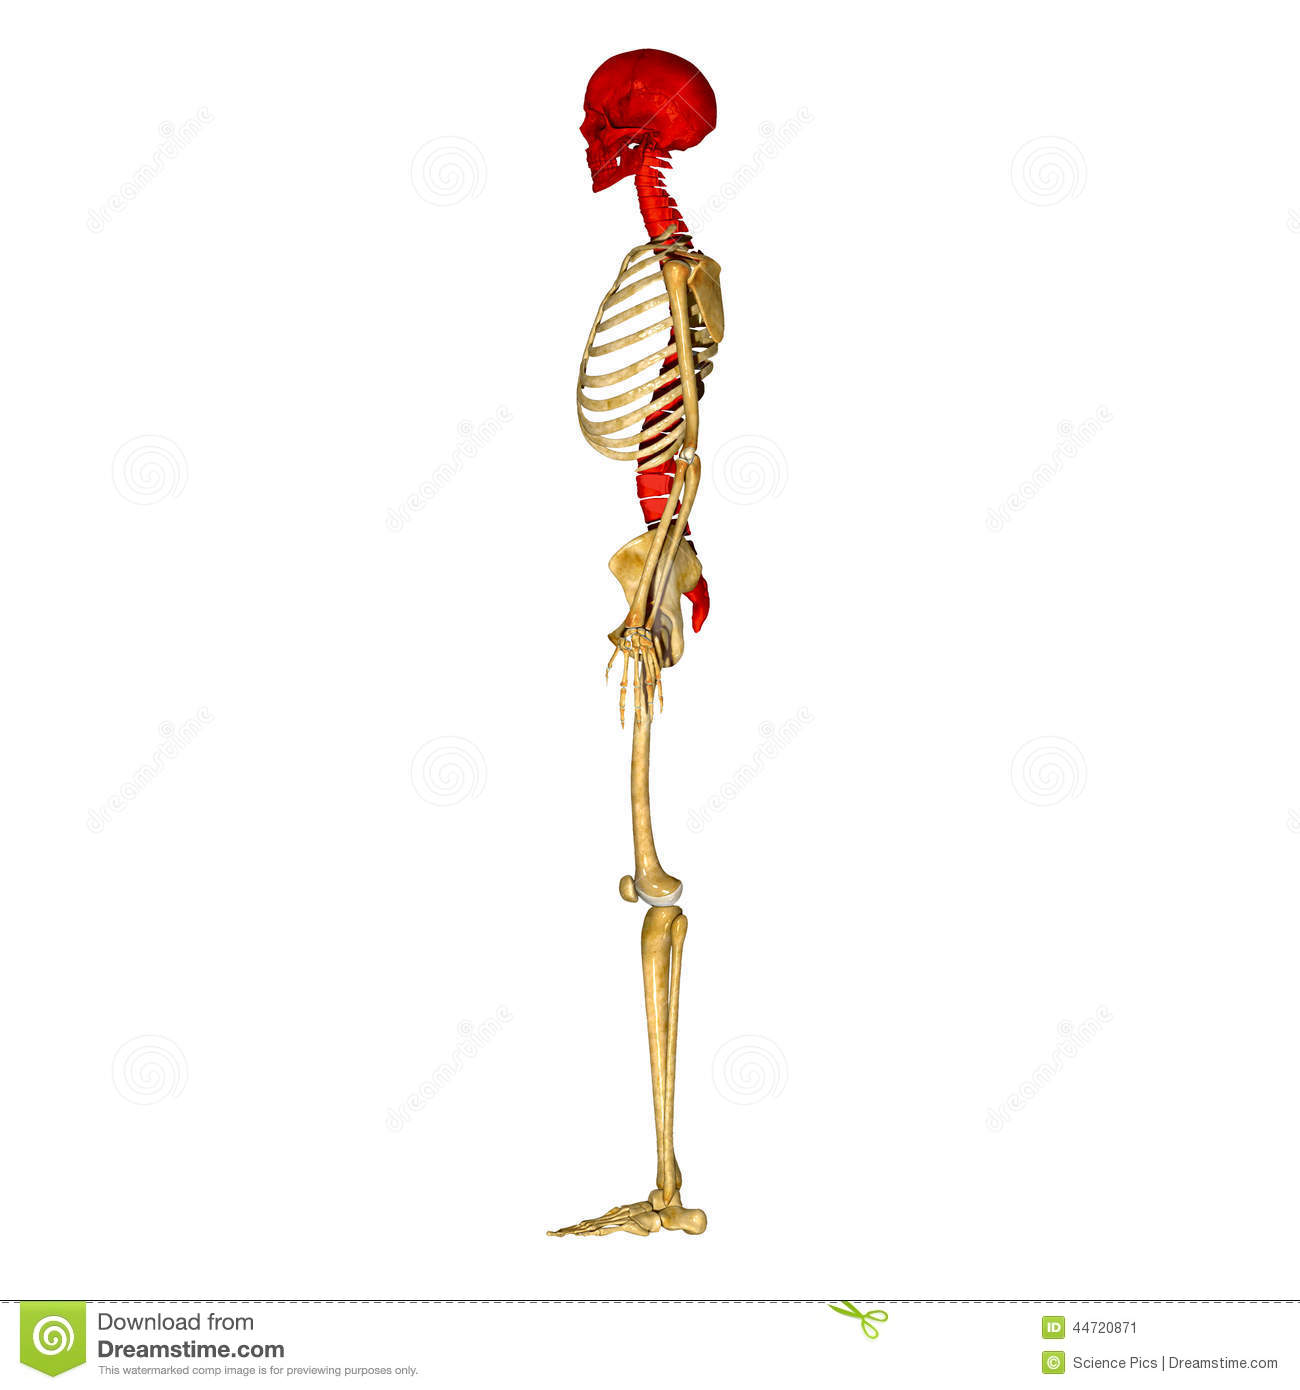 Skull with spinal cord stock illustration. Illustration of health ...